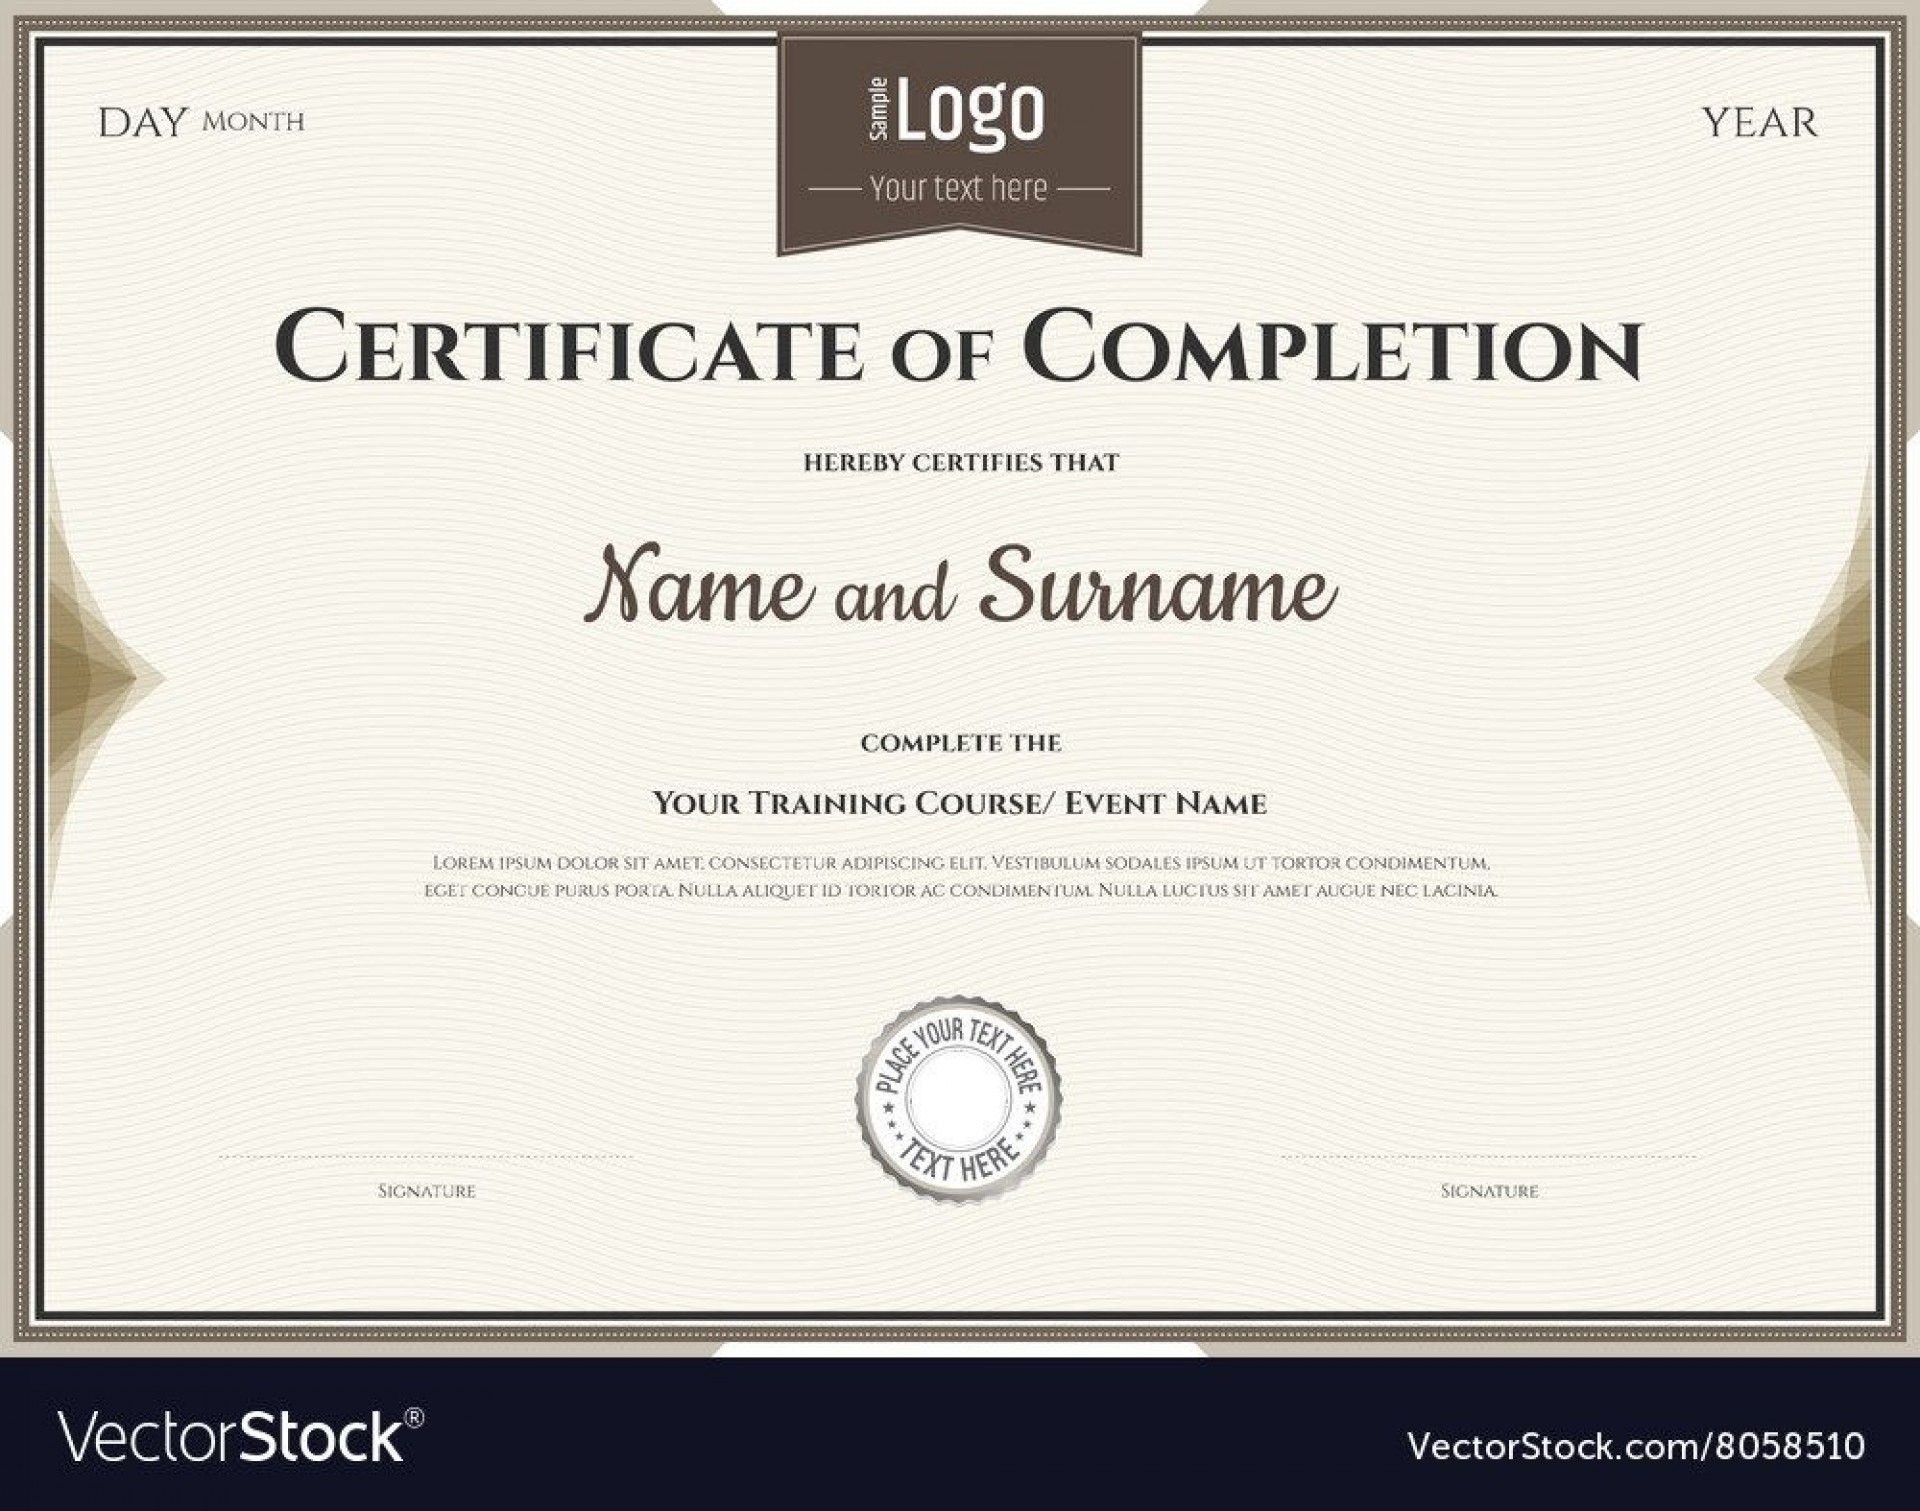 007 Surprising Certificate Of Completion Template Free Picture  Training Download Word1920